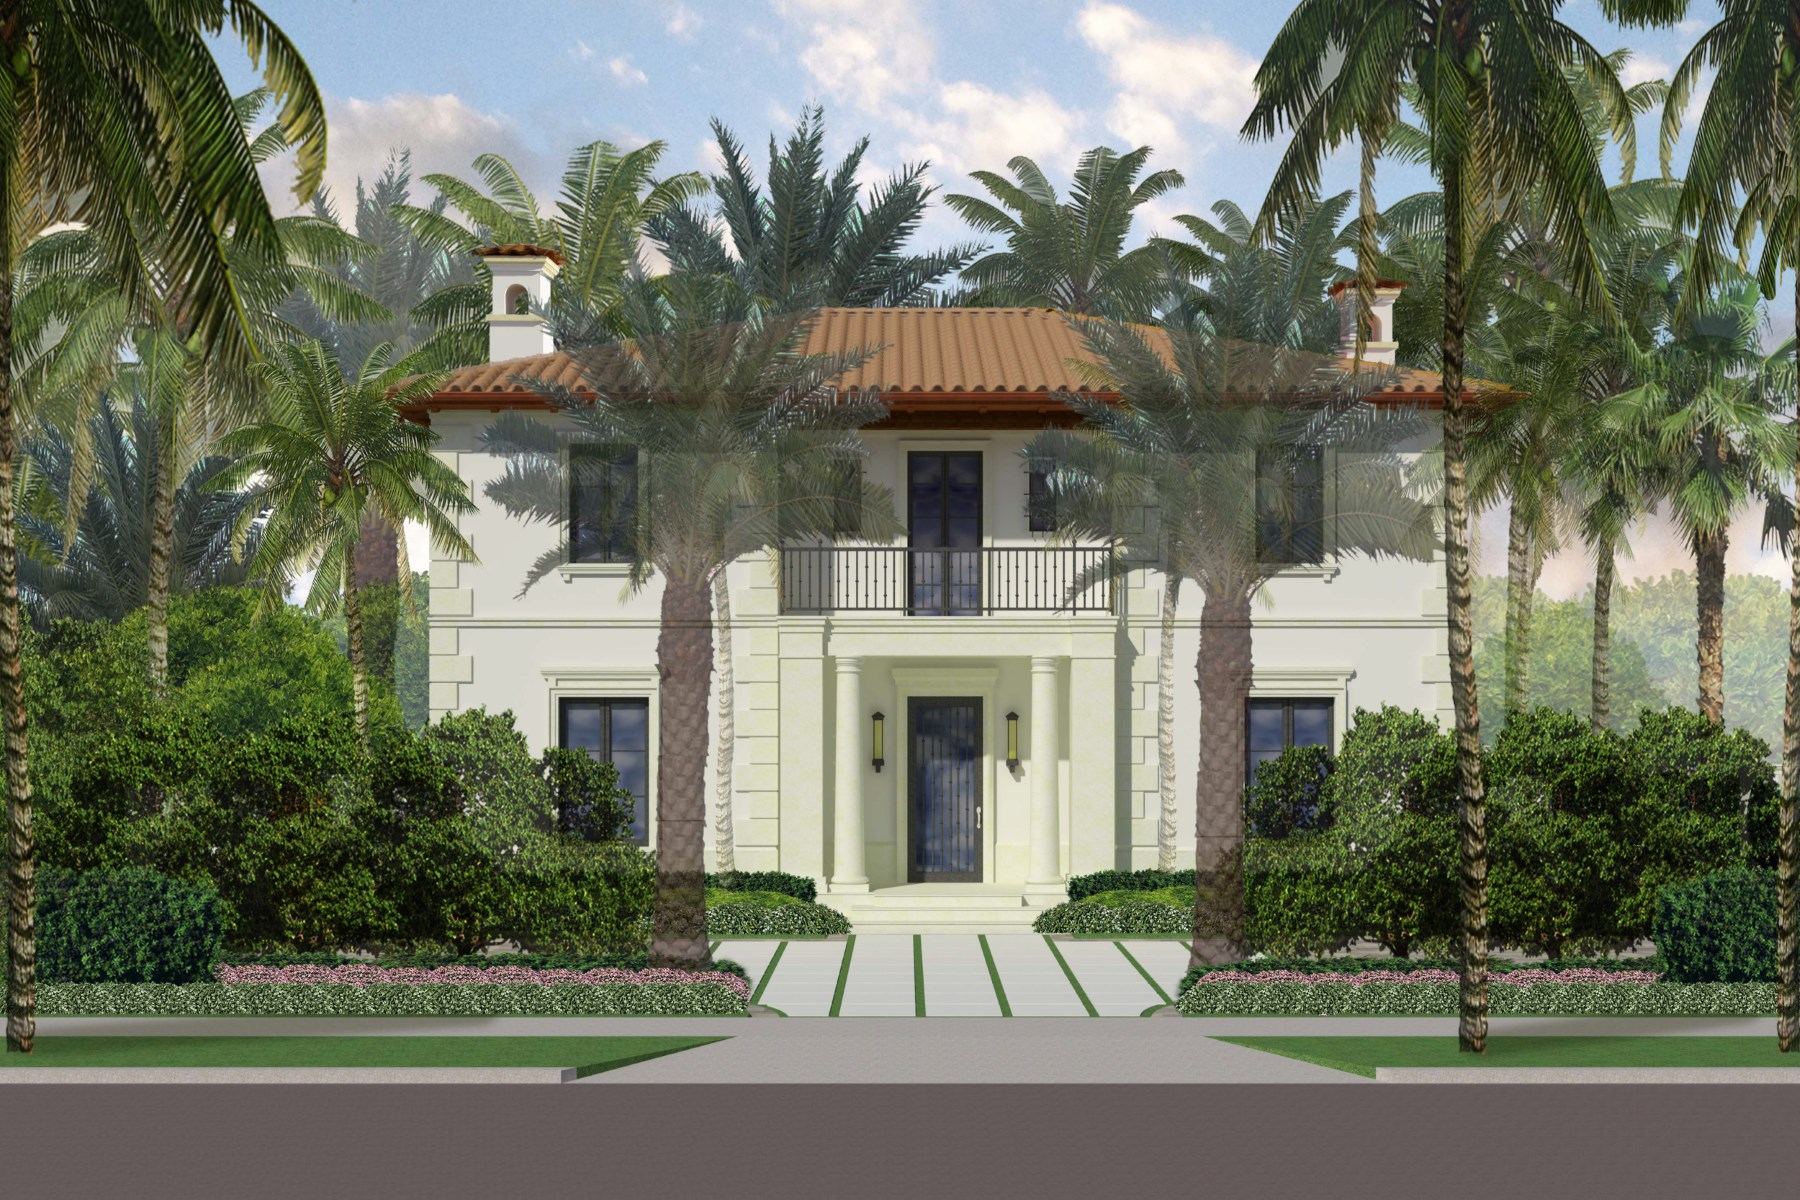 Tek Ailelik Ev için Satış at Mid-Town Palm Beach New Construction 280 N County Rd North End, Palm Beach, Florida, 33480 Amerika Birleşik Devletleri